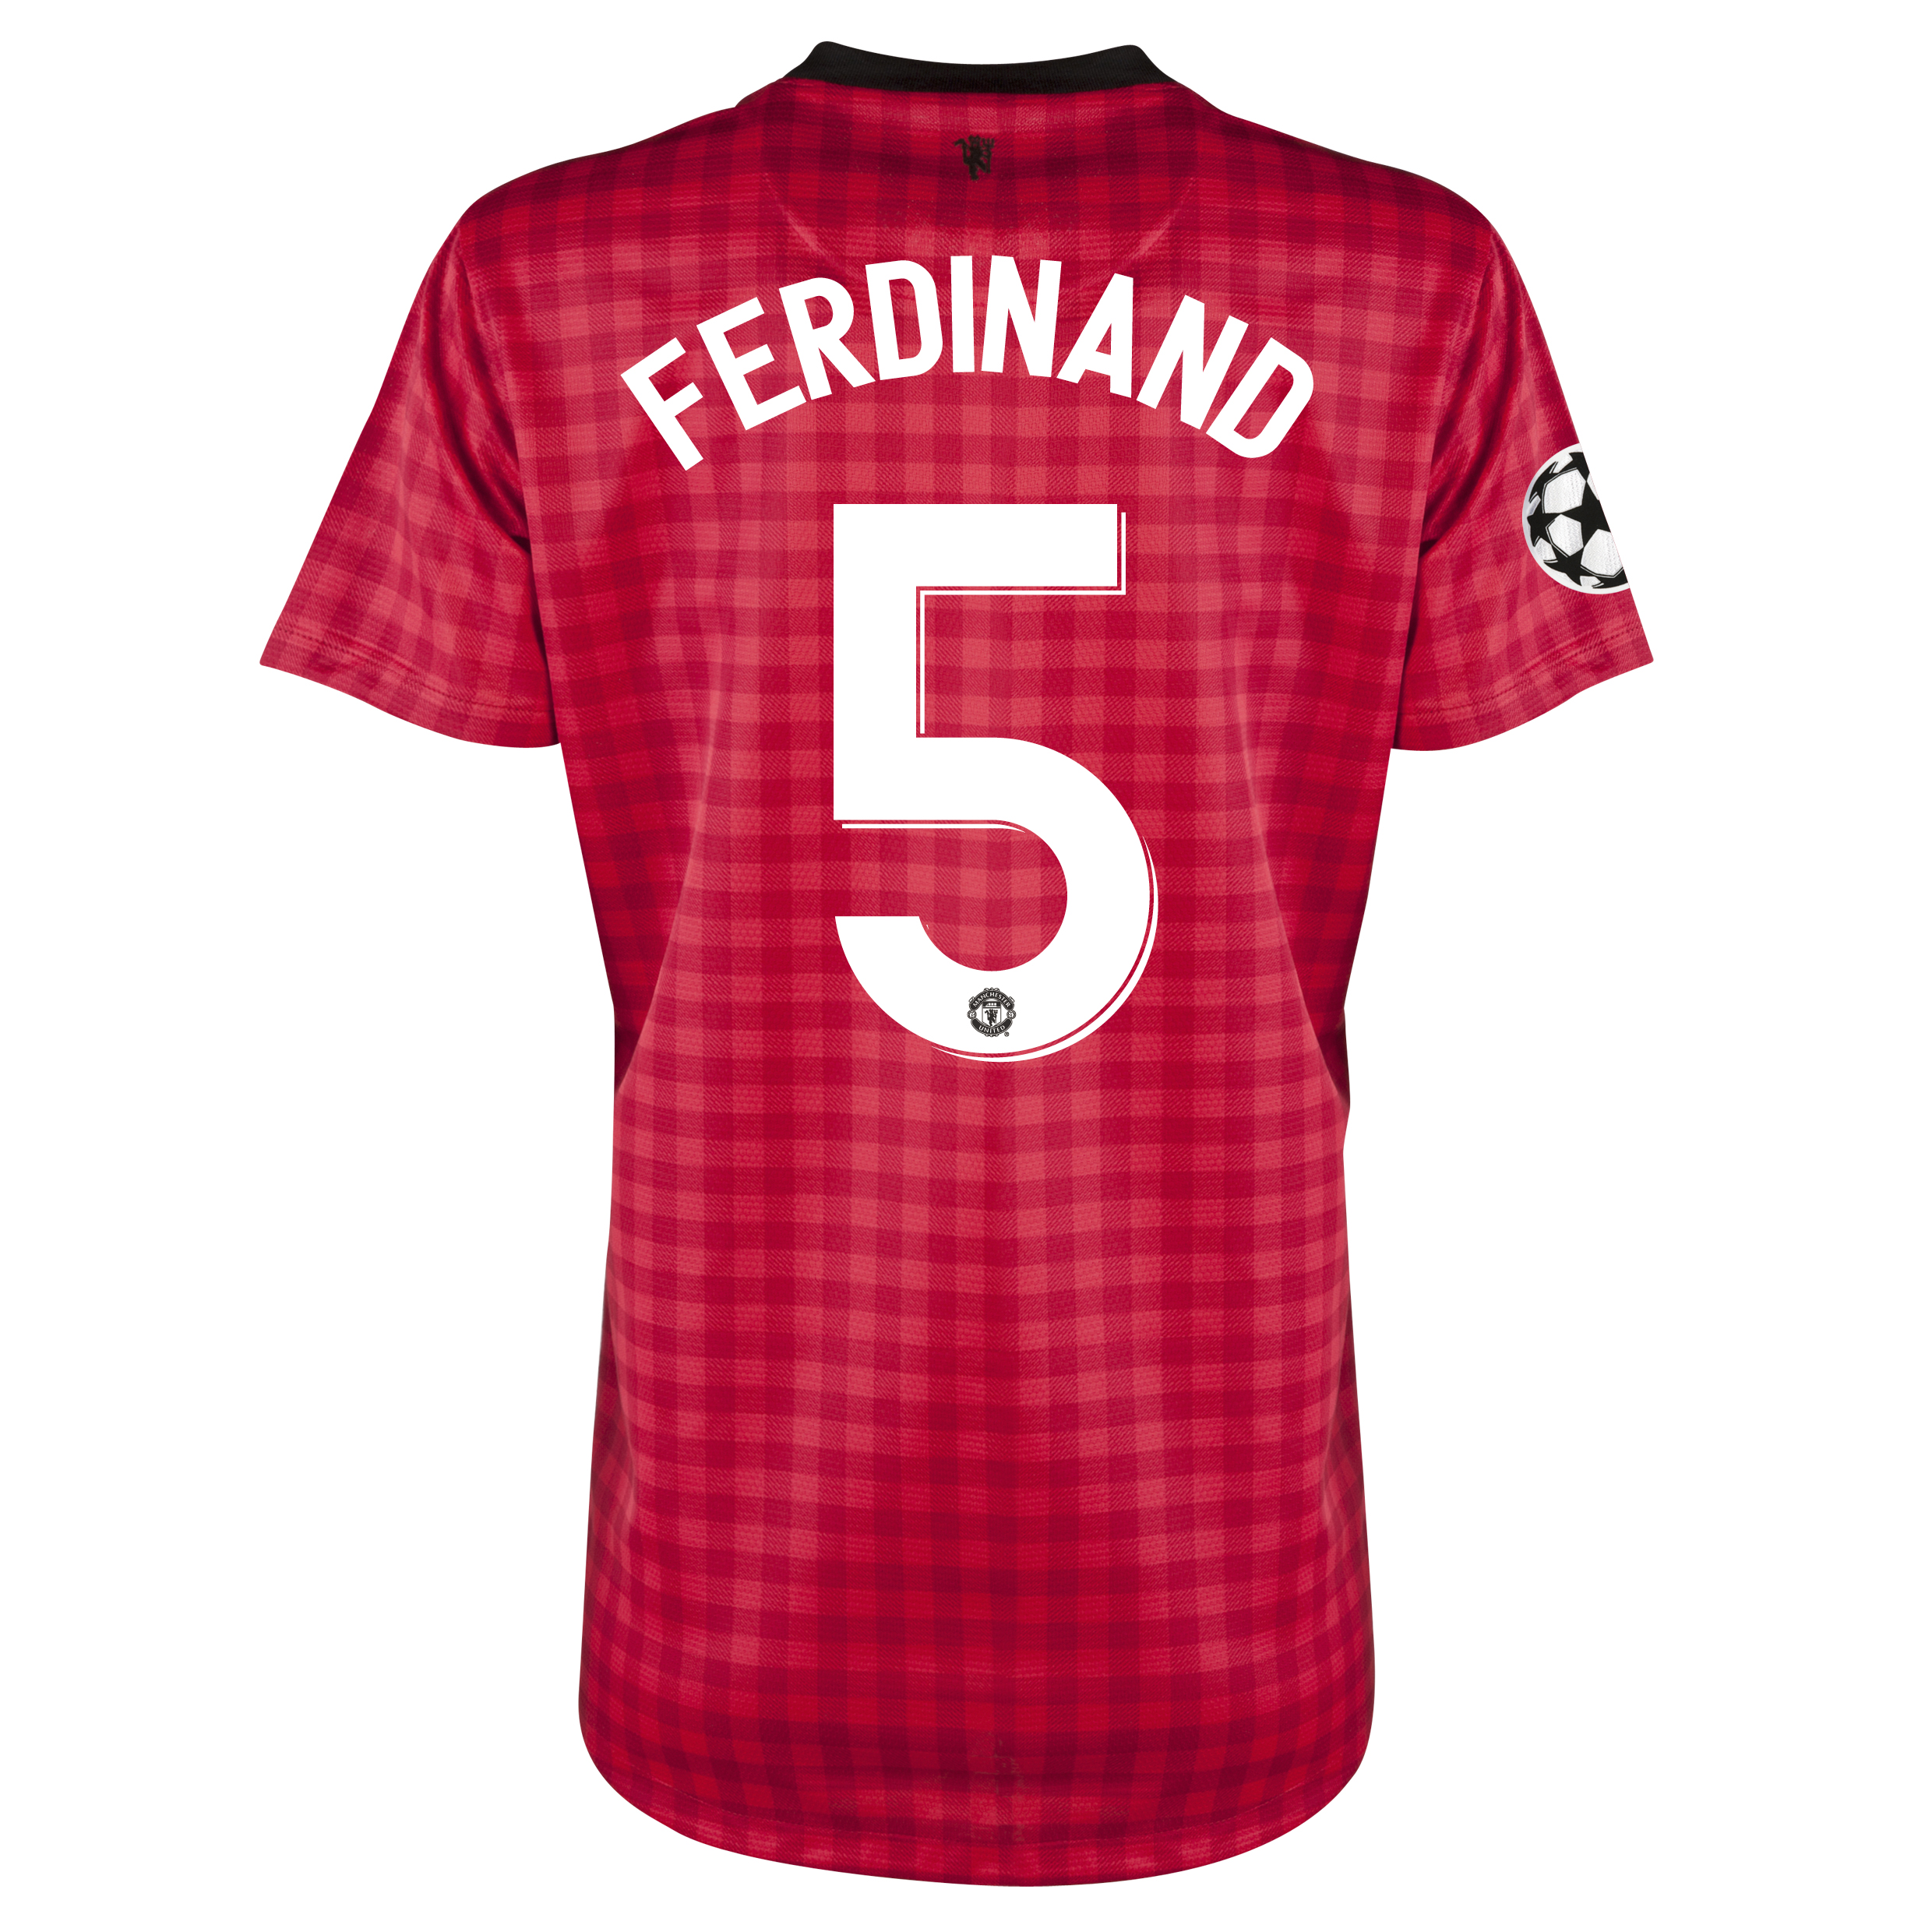 Man United UEFA Champions League Home Shirt 2012/13 - Womens with Ferdinand 5 printing